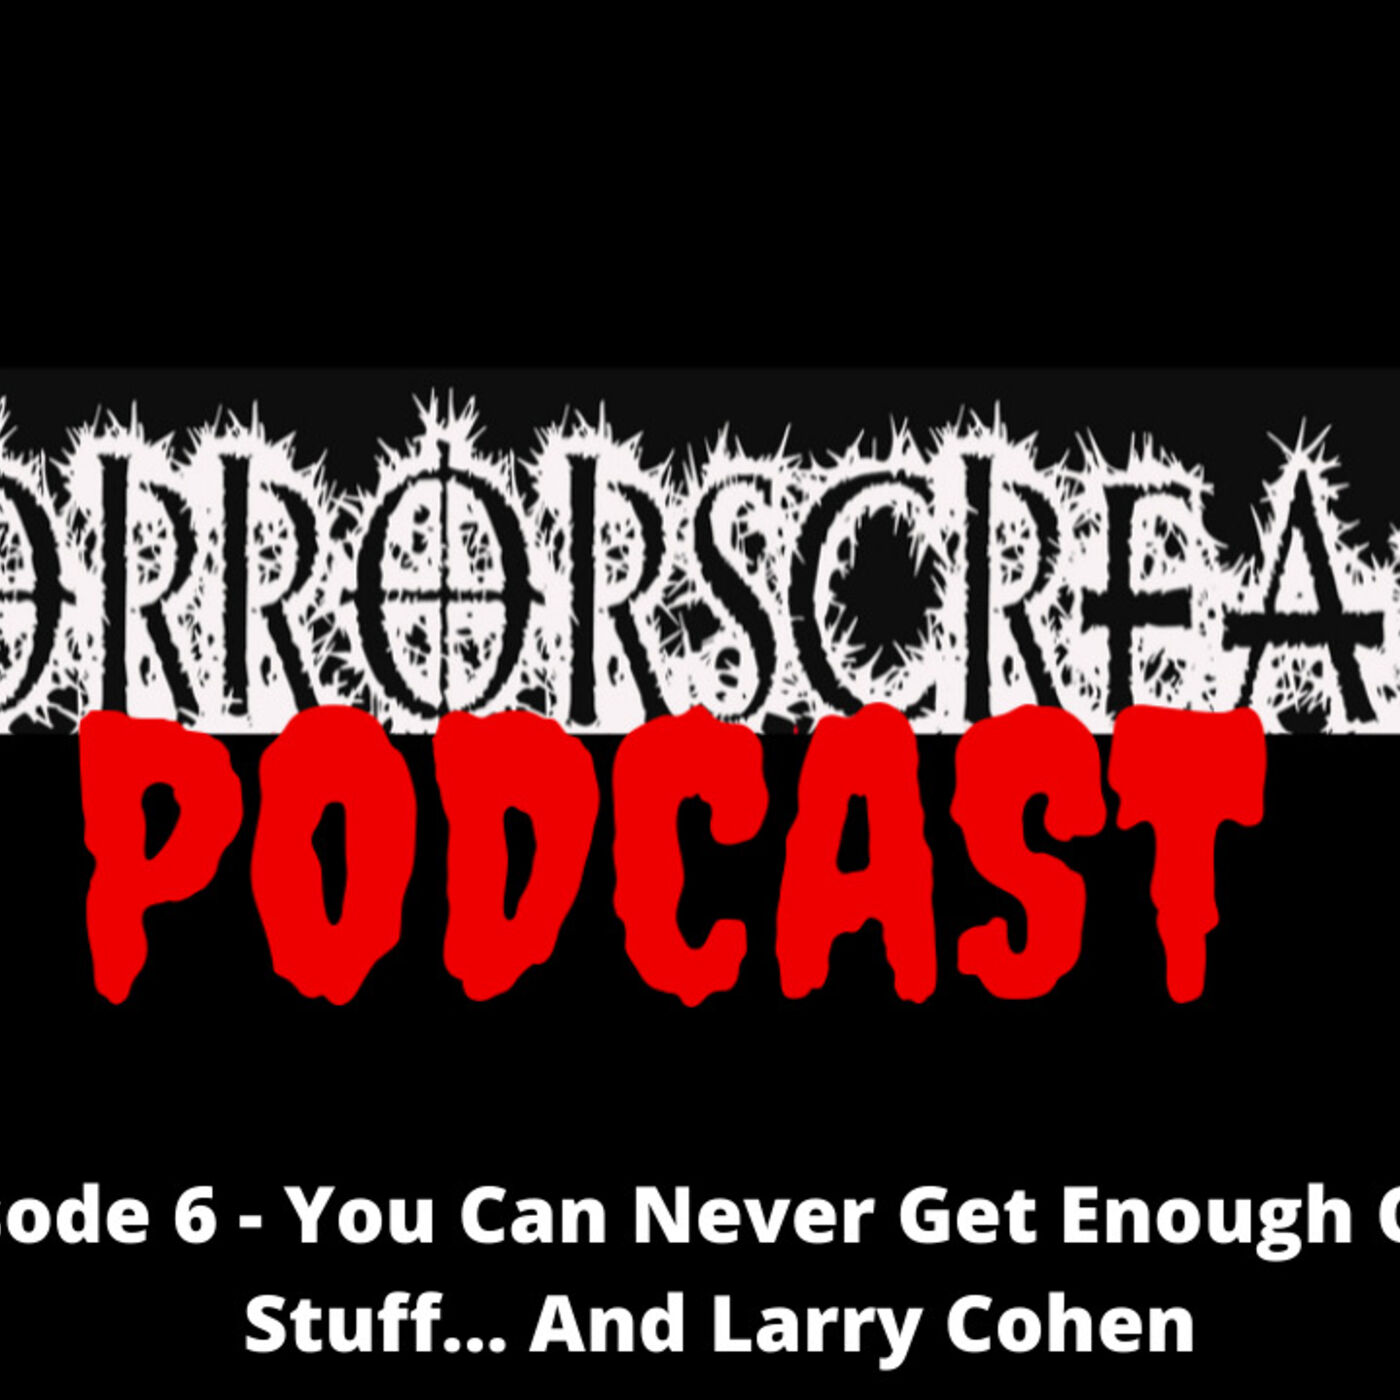 HORRORSCREAMS PODCAST: Episode 6 - You Can Never Get Enough Of The Stuff... And Larry Cohen